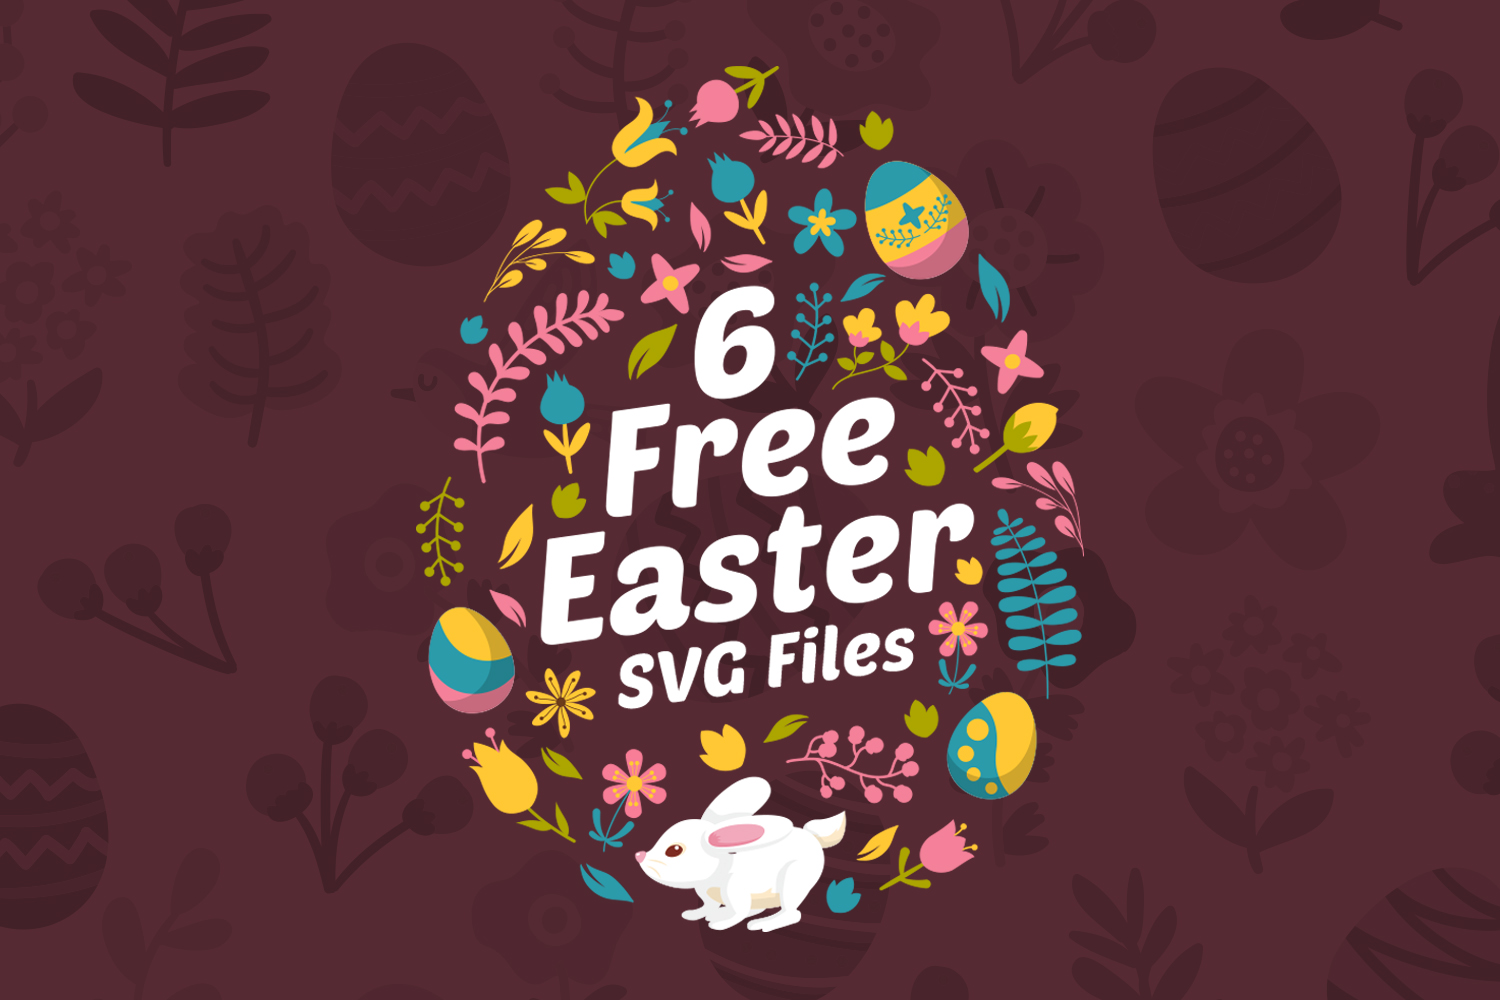 6 FREE Easter SVG Files Preview